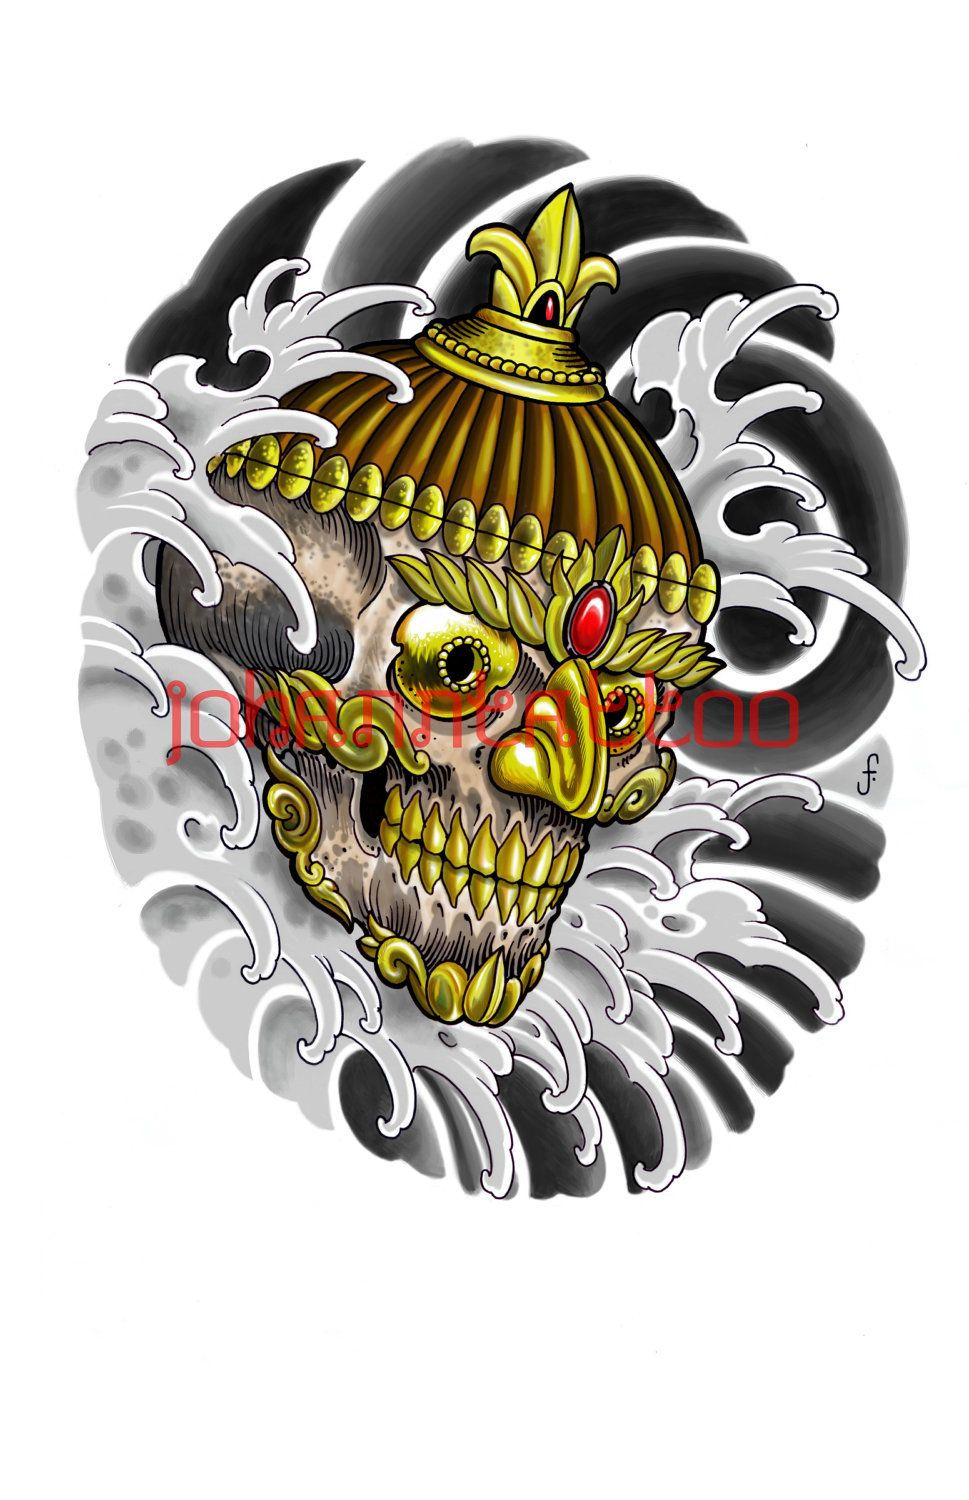 Items Similar To Tibetan Kapala Skull Tattoo Print On Etsy Oriental Tattoo Tibetan Tattoo Skeleton Tattoos